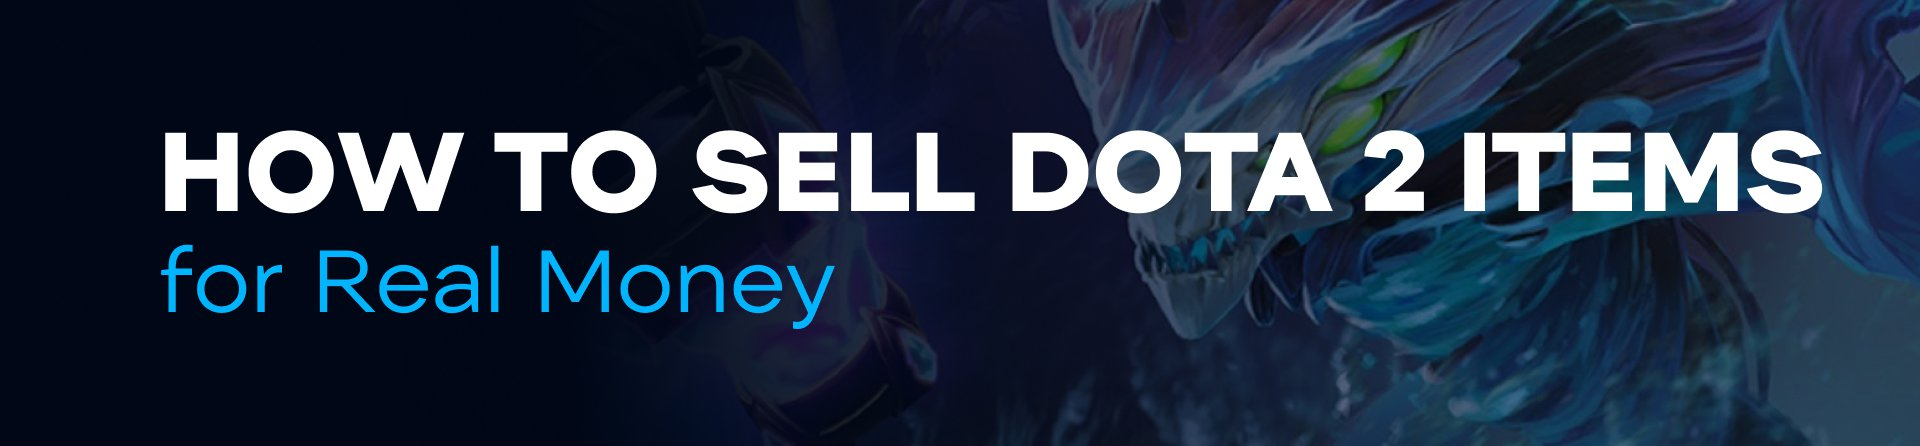 How to Sell DOTA 2 Items for Real Money